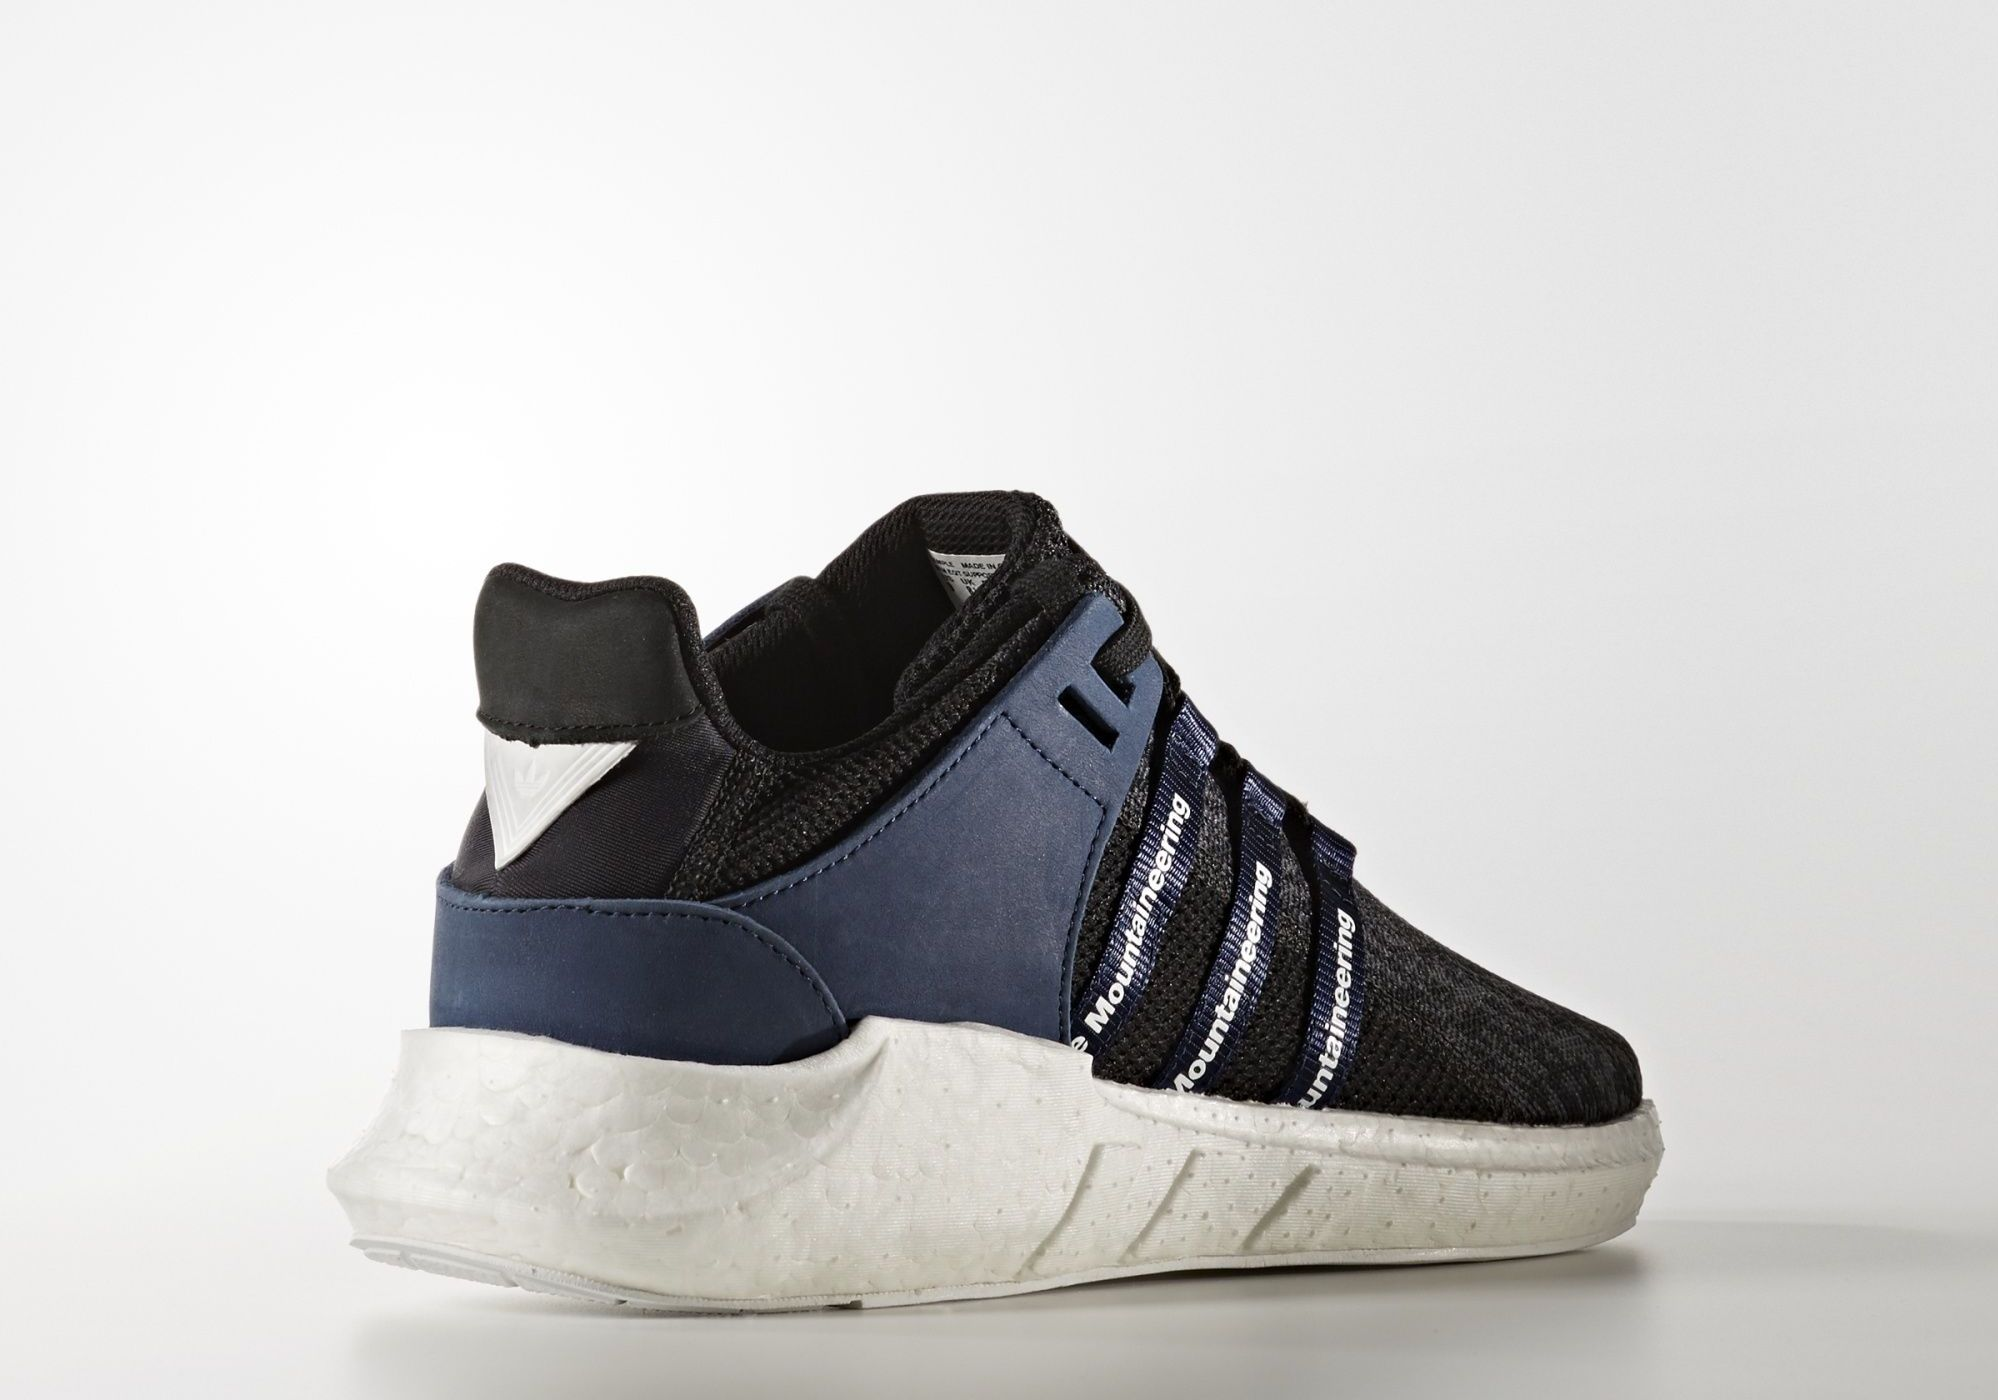 28447a3bf997 The Upcoming White Mountaineering x adidas EQT Support - WearTesters